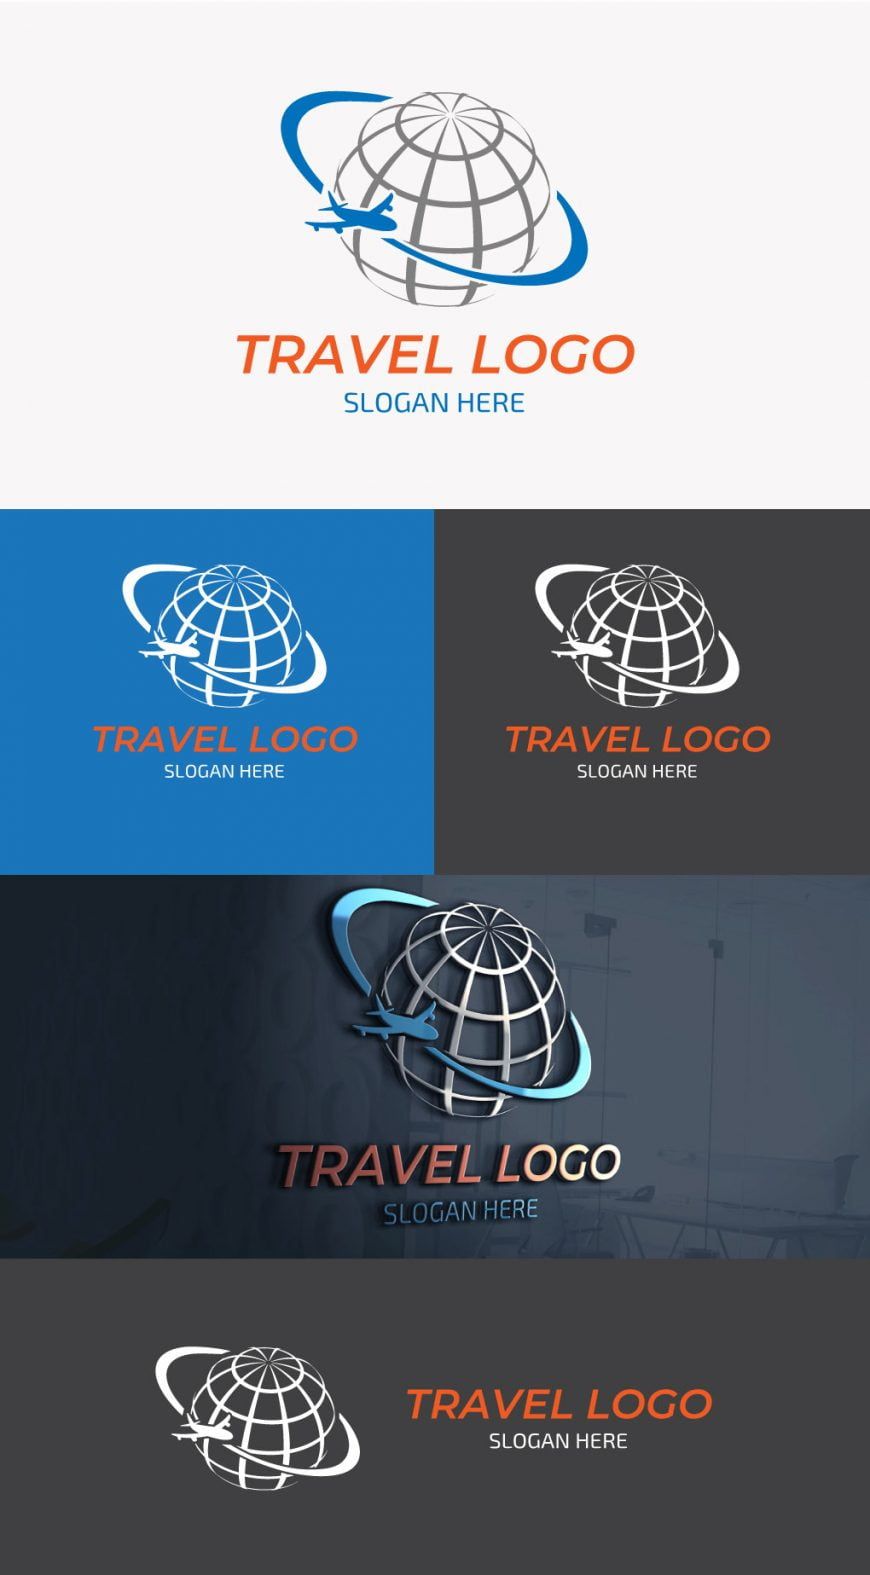 travel-logo-template